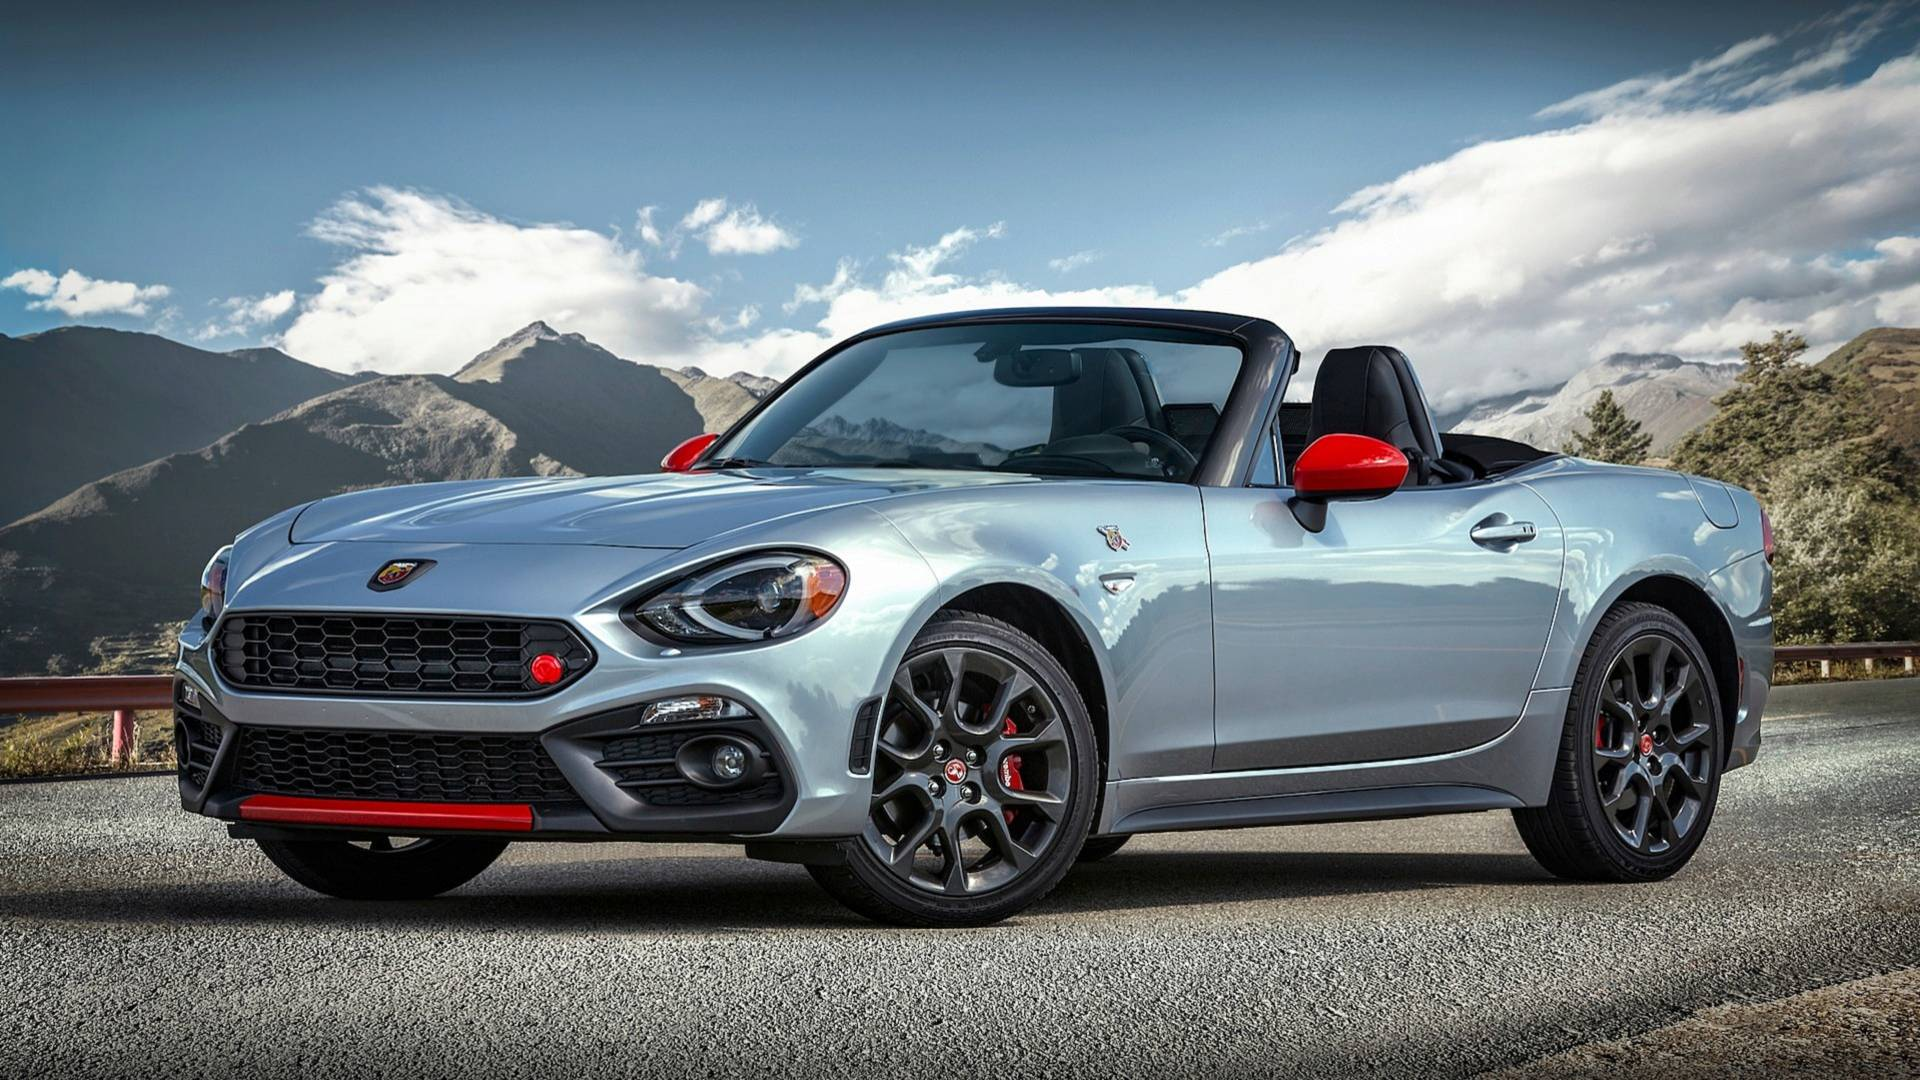 36 All New 2019 Fiat Spider Specs